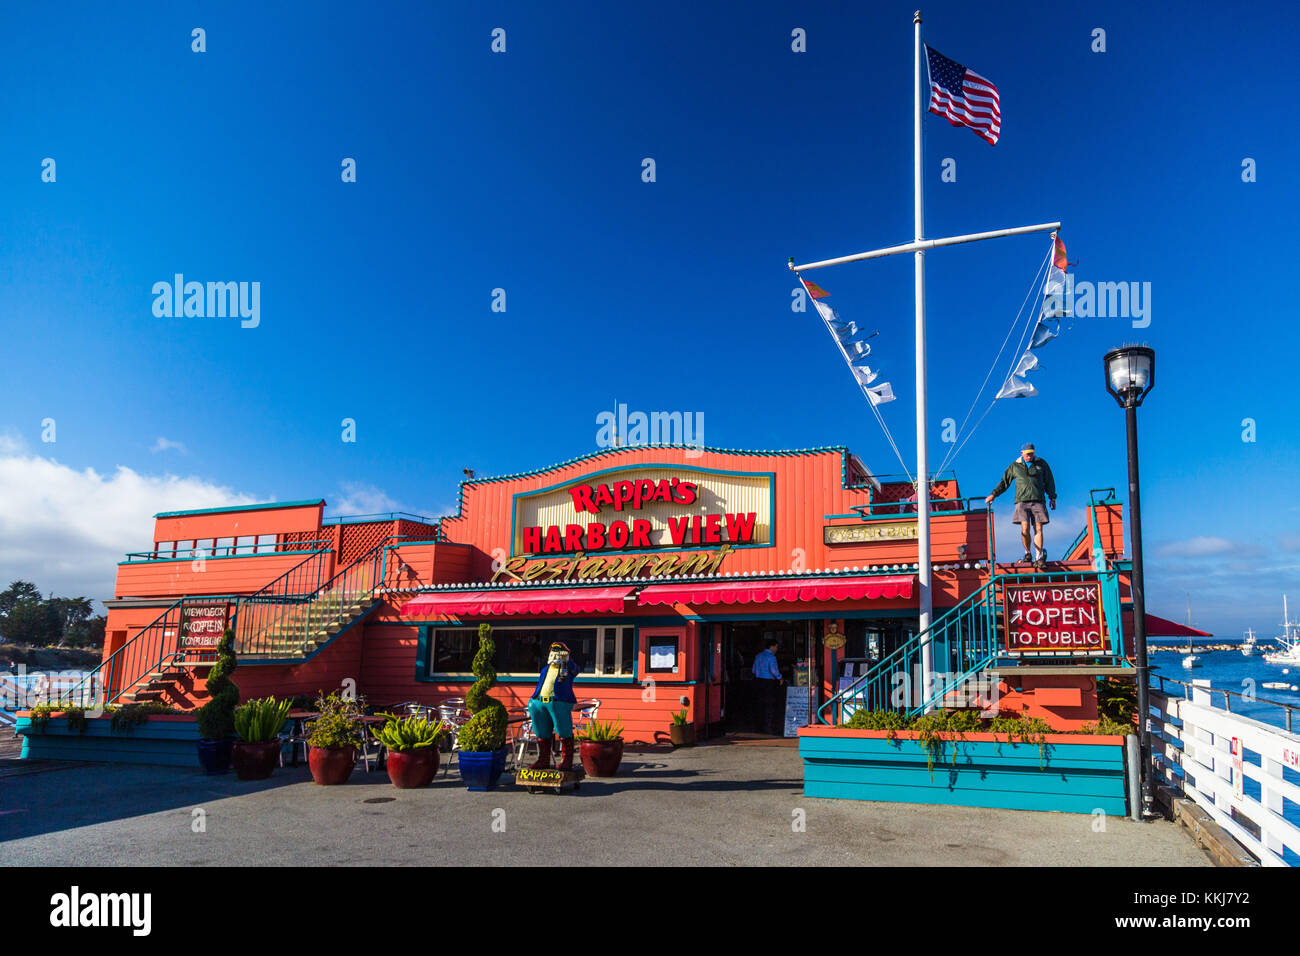 Seafood Restaurant San Francisco Fishermans Wharf